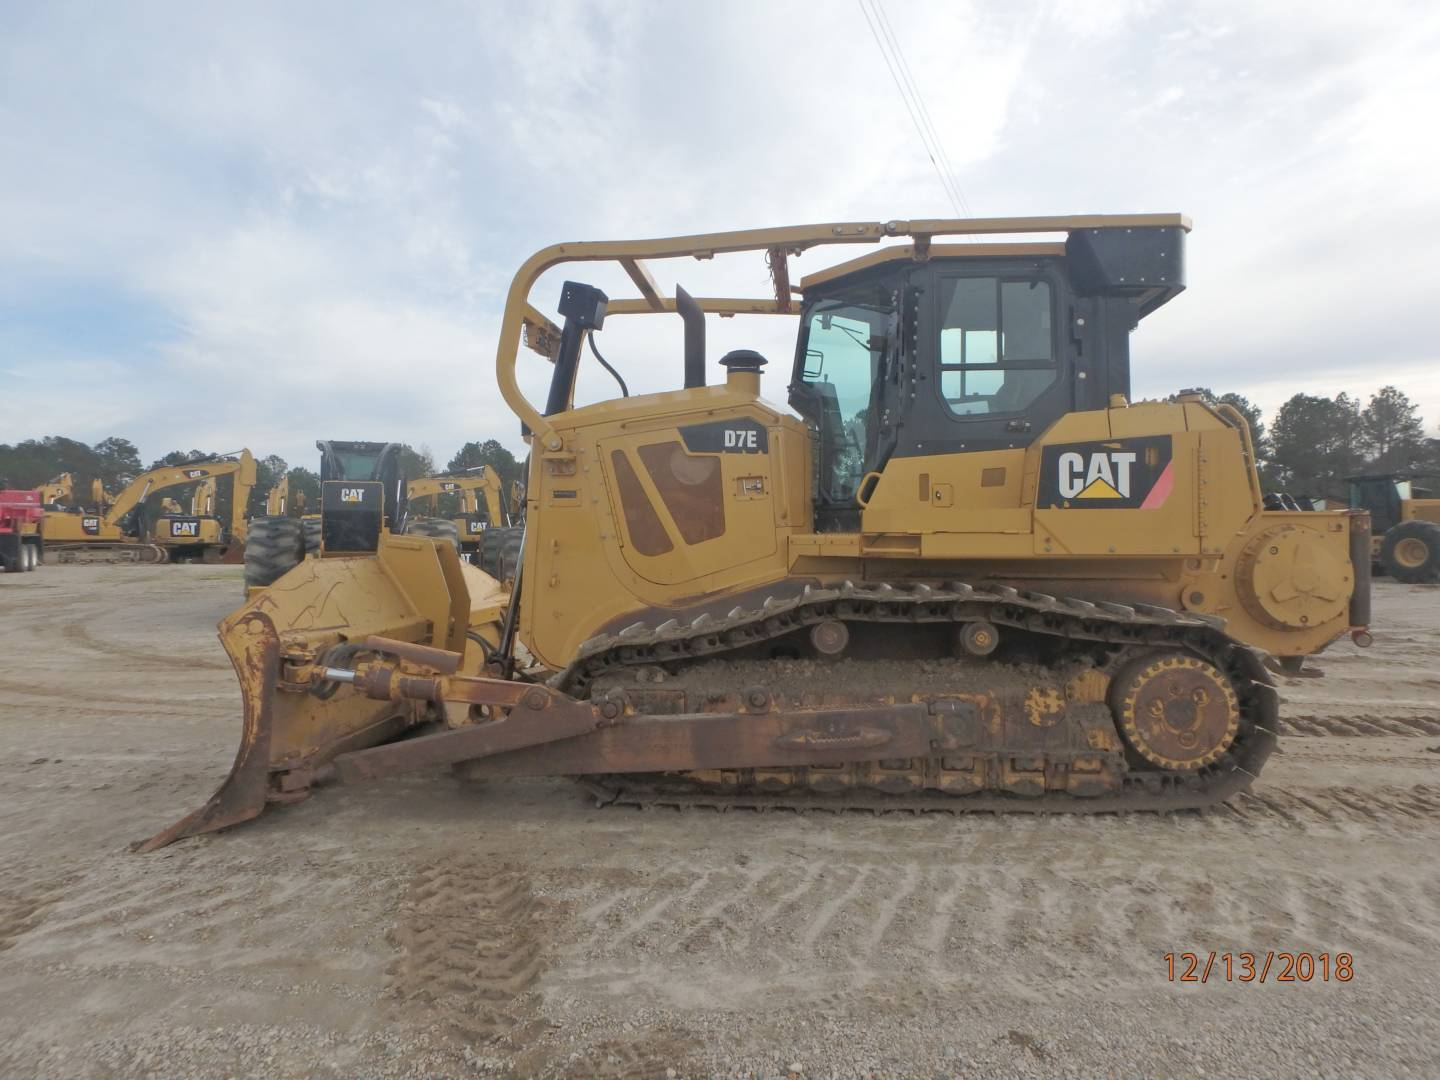 Used 2011 Caterpillar D7E for Sale in NJ, PA, DE and Staten Island